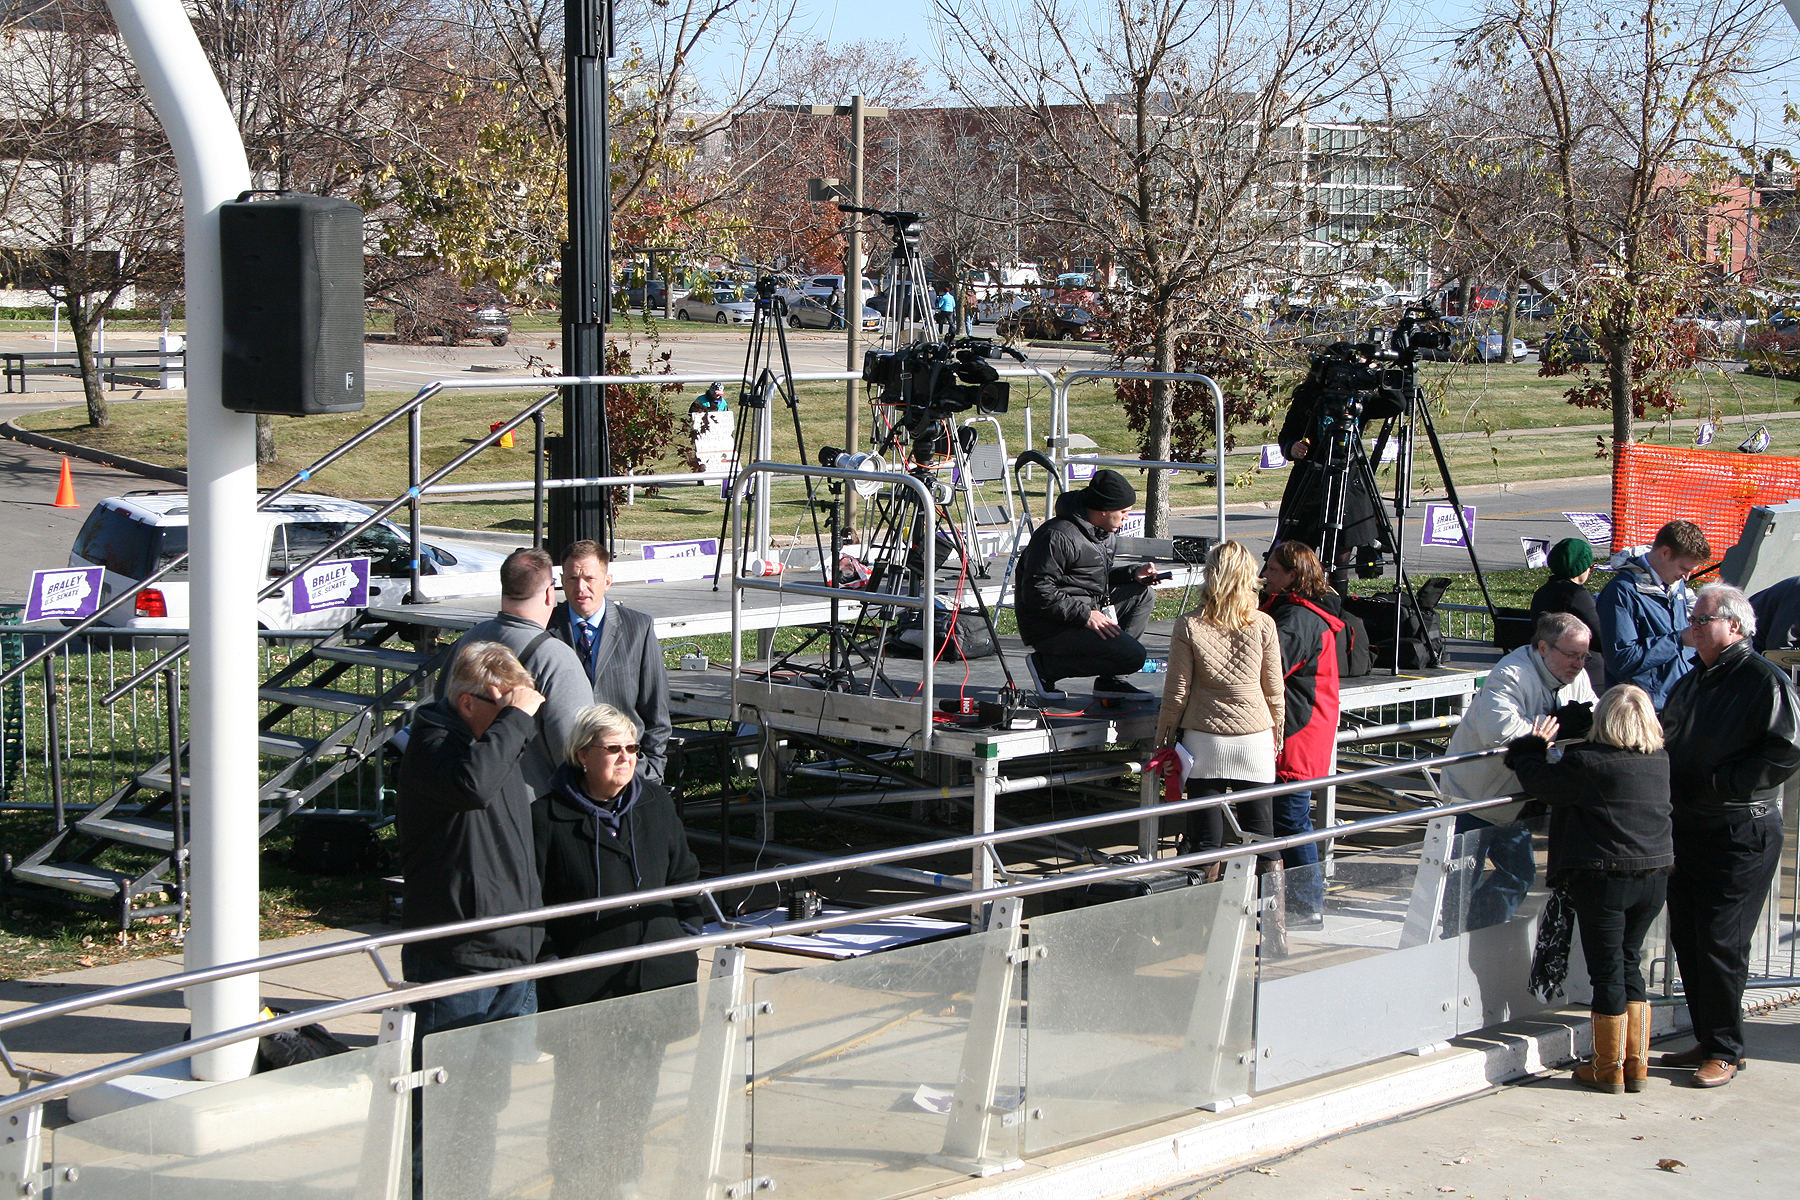 Press Risers at Political event.